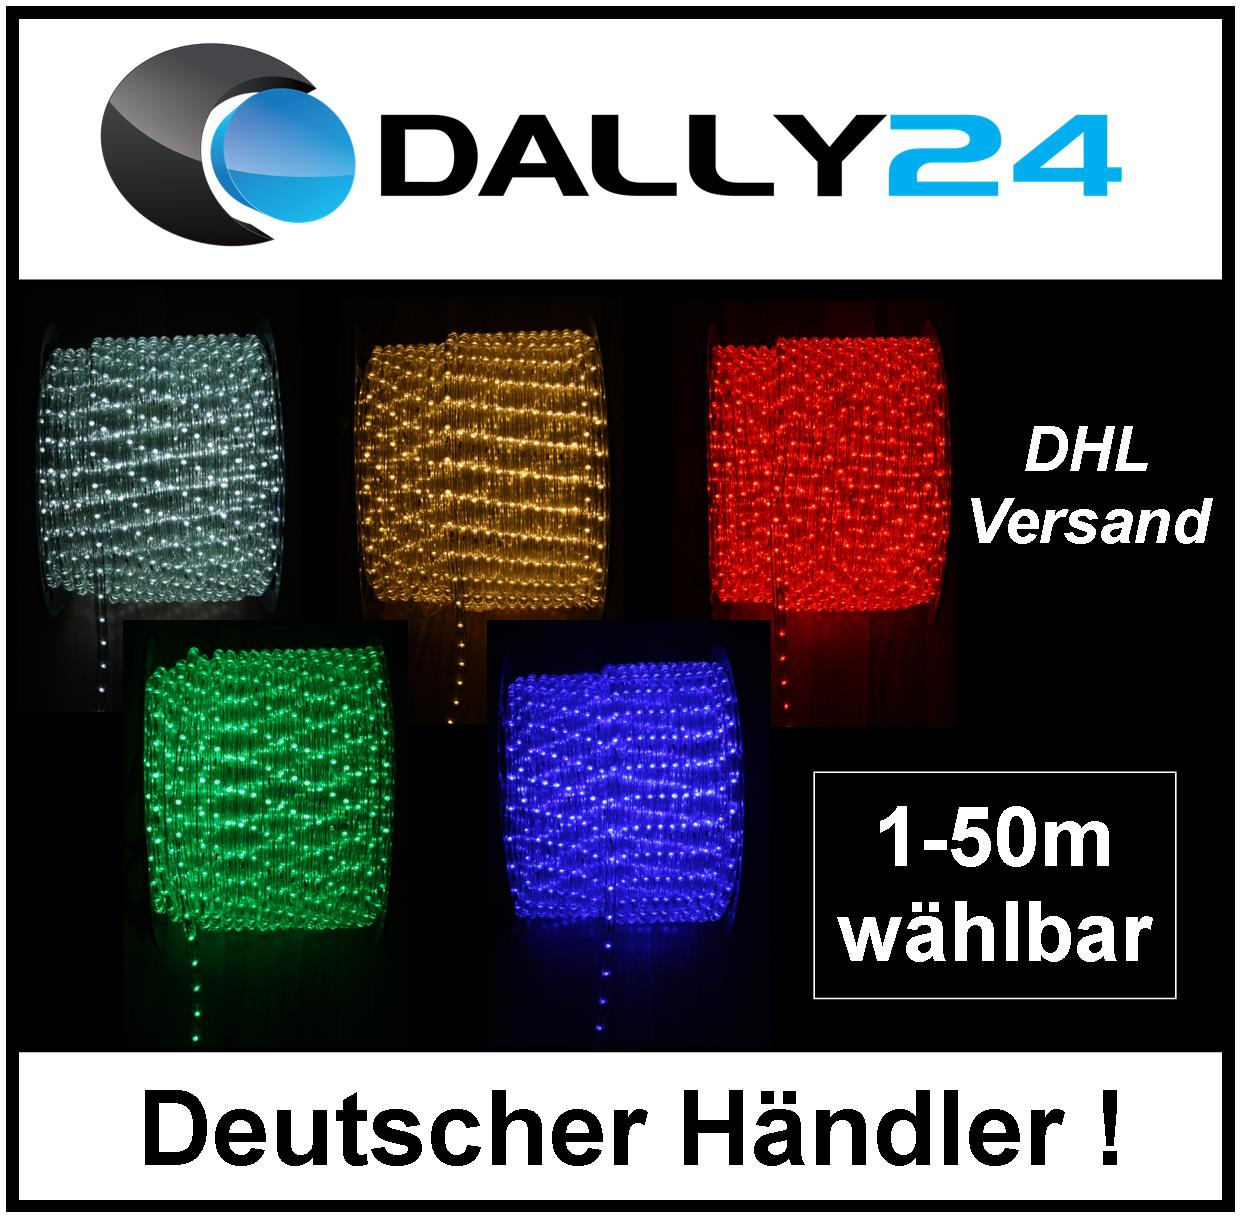 led lichtschlauch innen au en 230v 1 50m w hlbar licht schlauch strip zubeh r ebay. Black Bedroom Furniture Sets. Home Design Ideas